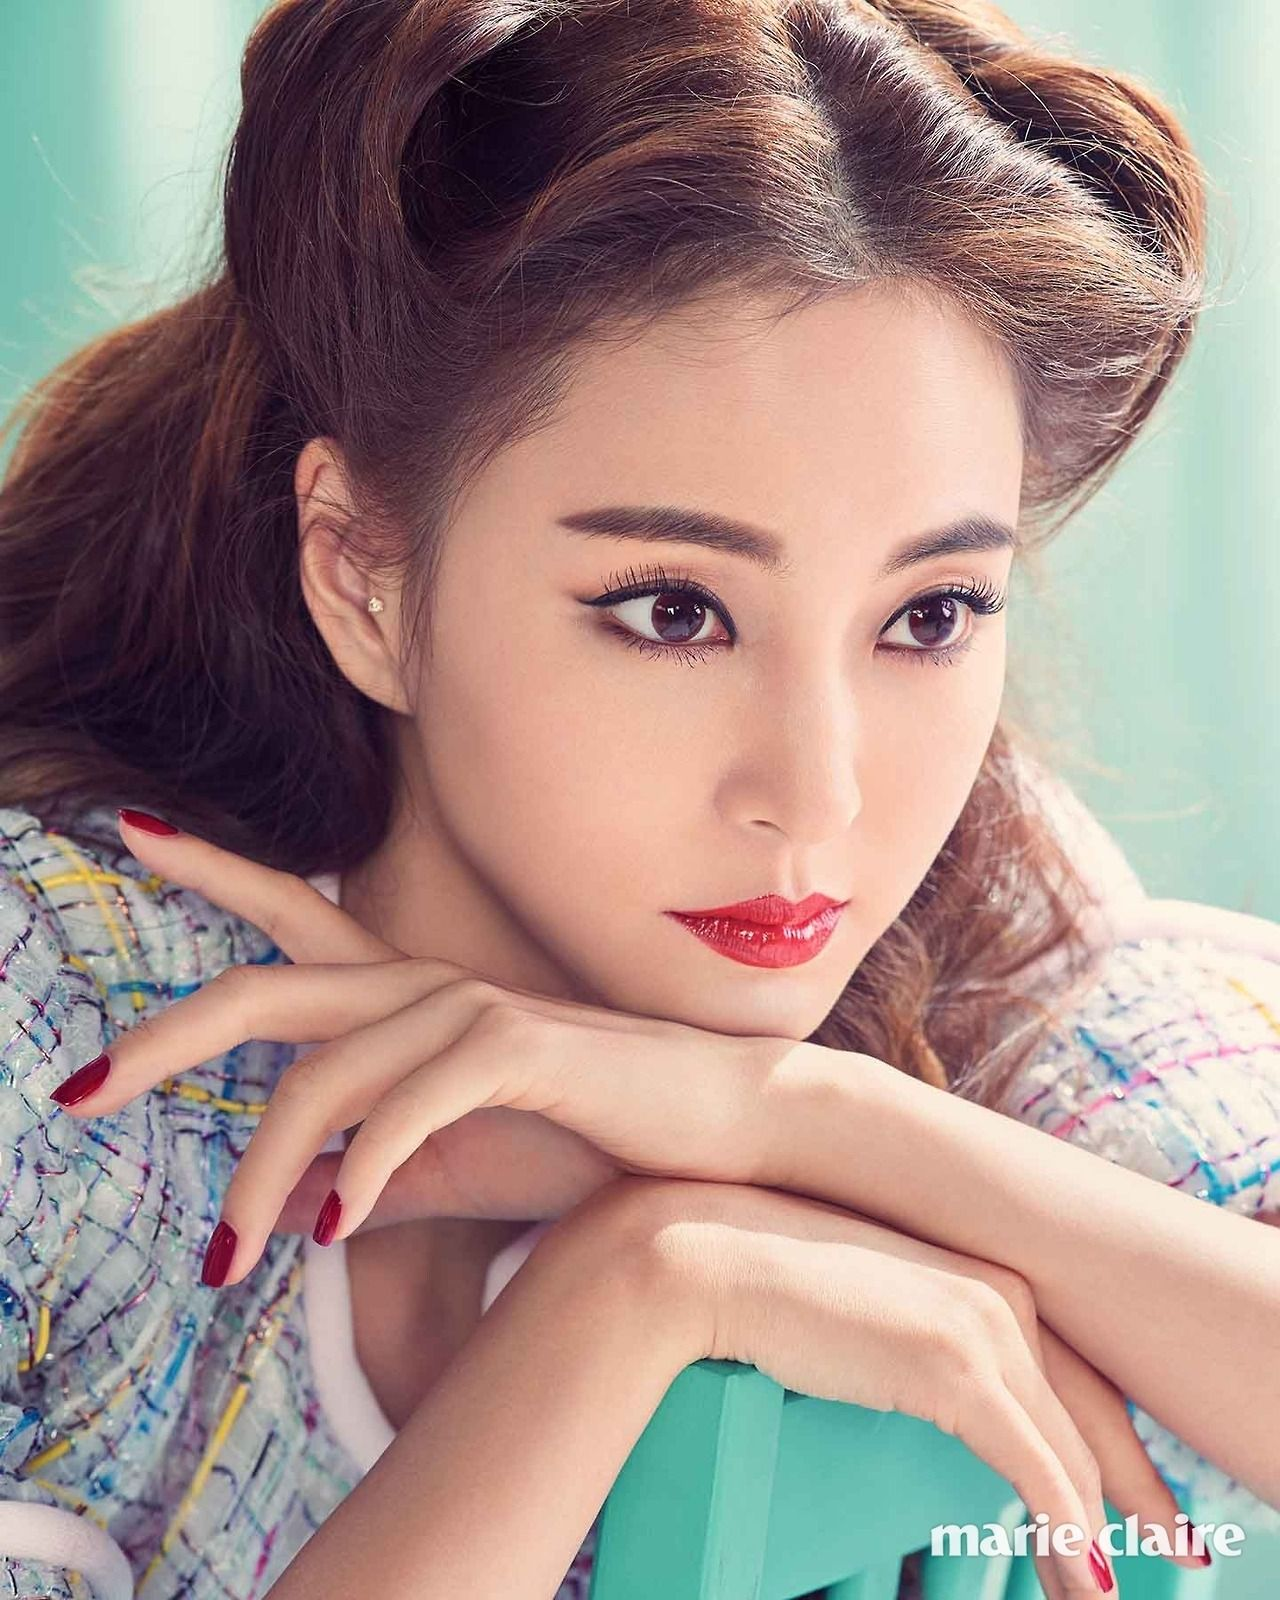 Korean Model and Actress Han Ye-Seul is Gorgeous - Sexiest